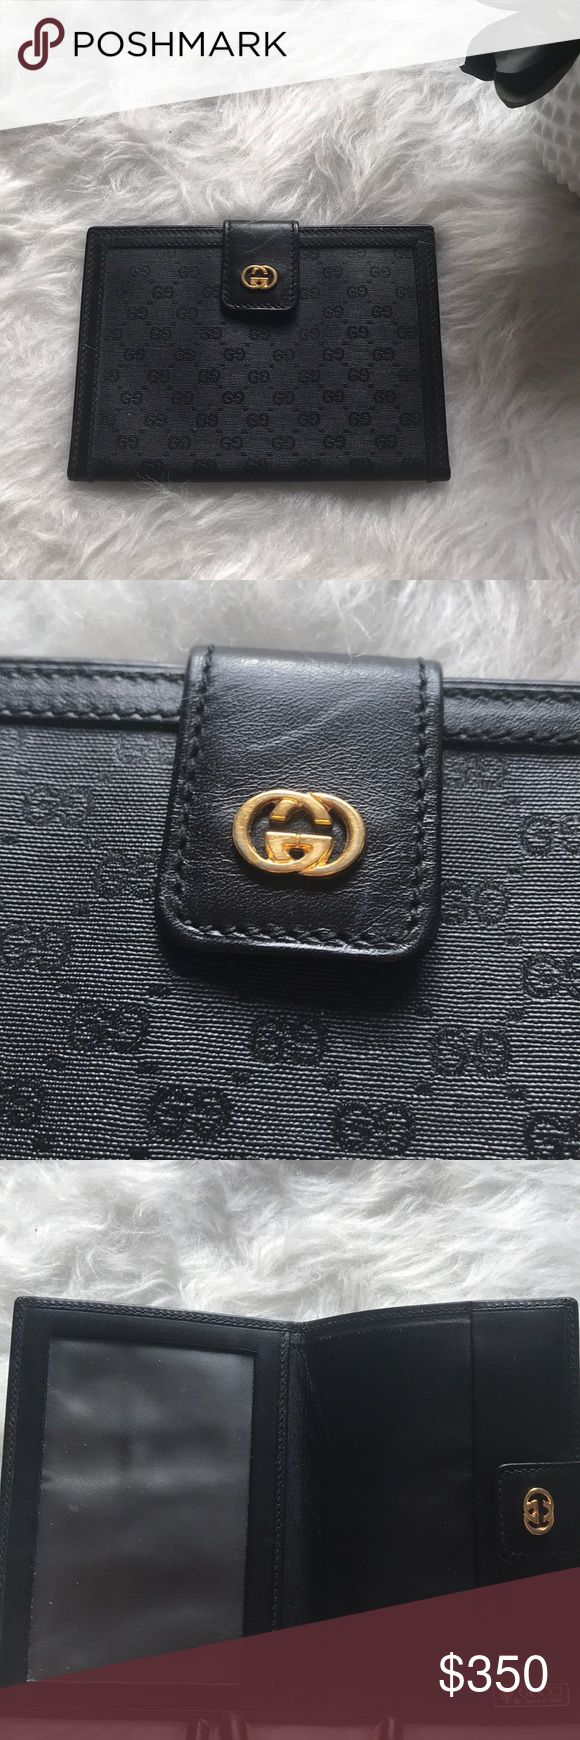 GUCCI travel document passport holder wallet GUCCI travel document passport holder wallet. Great condition leather, vinyl Gucci passport, travel document holder with gold detail. Have an since 2010, was a gift for travel. Minor where do you to use. Sleek and beautiful for upcoming vacations and travel Gucci Bags